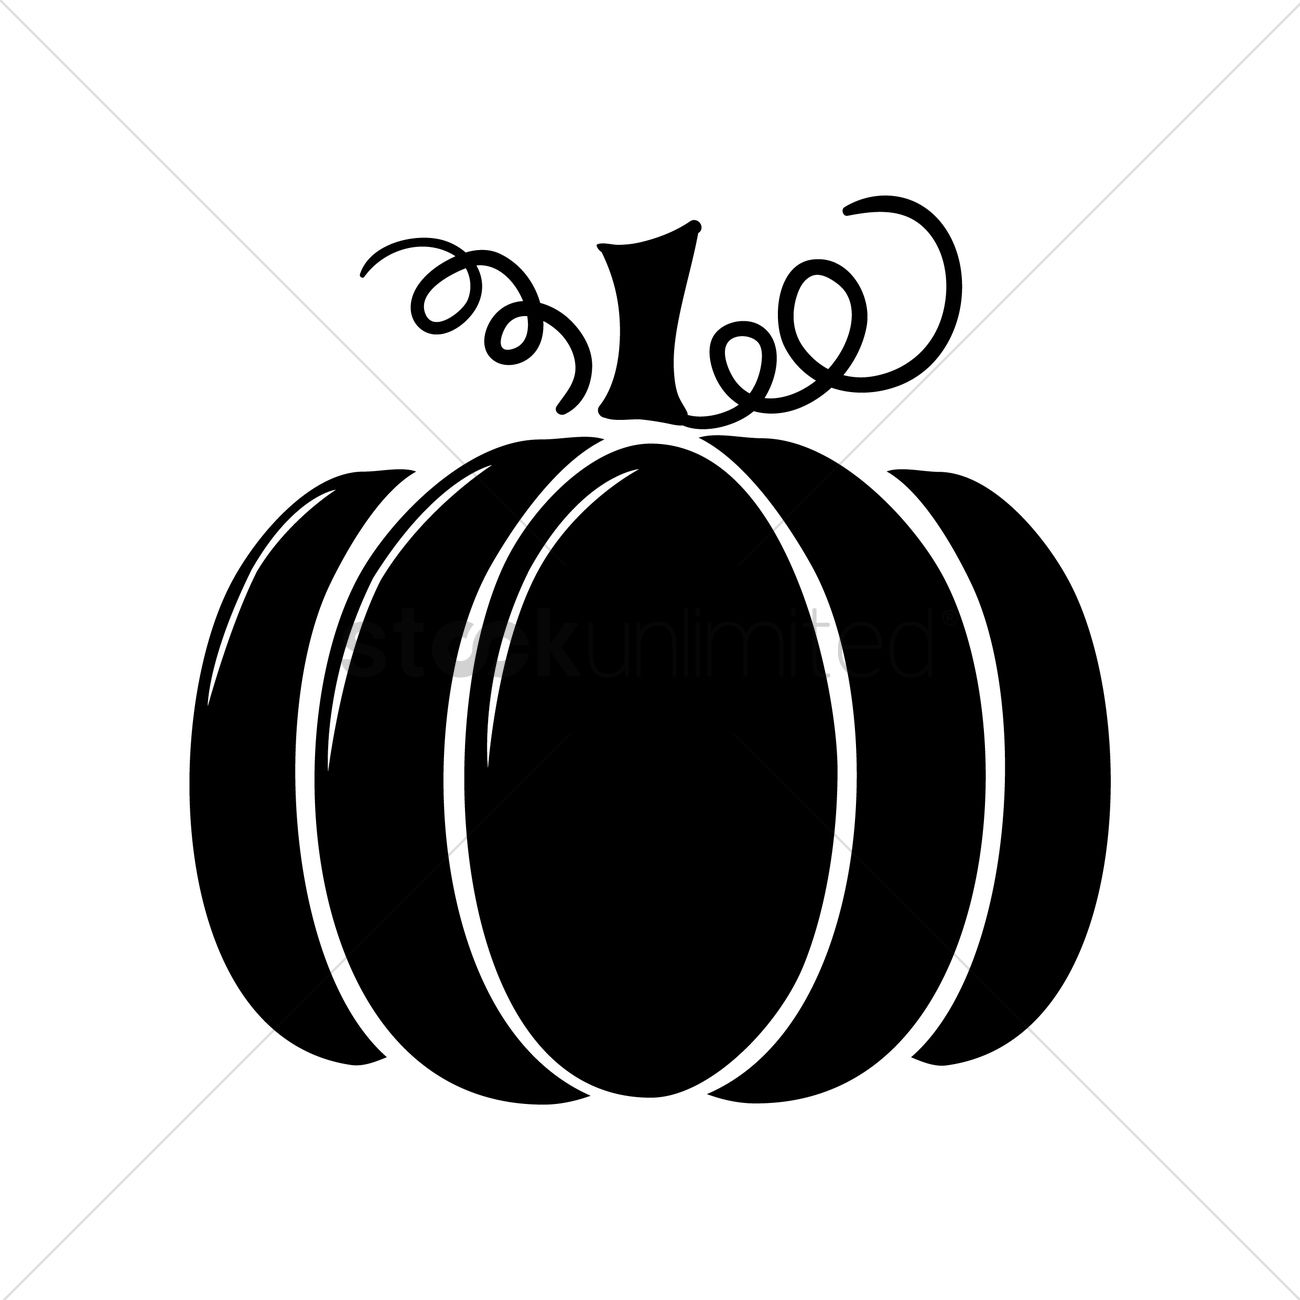 silhouette of pumpkin vector image 1447191 stockunlimited rh stockunlimited com Halloween Pumpkin Vector Halloween Pumpkin Vector